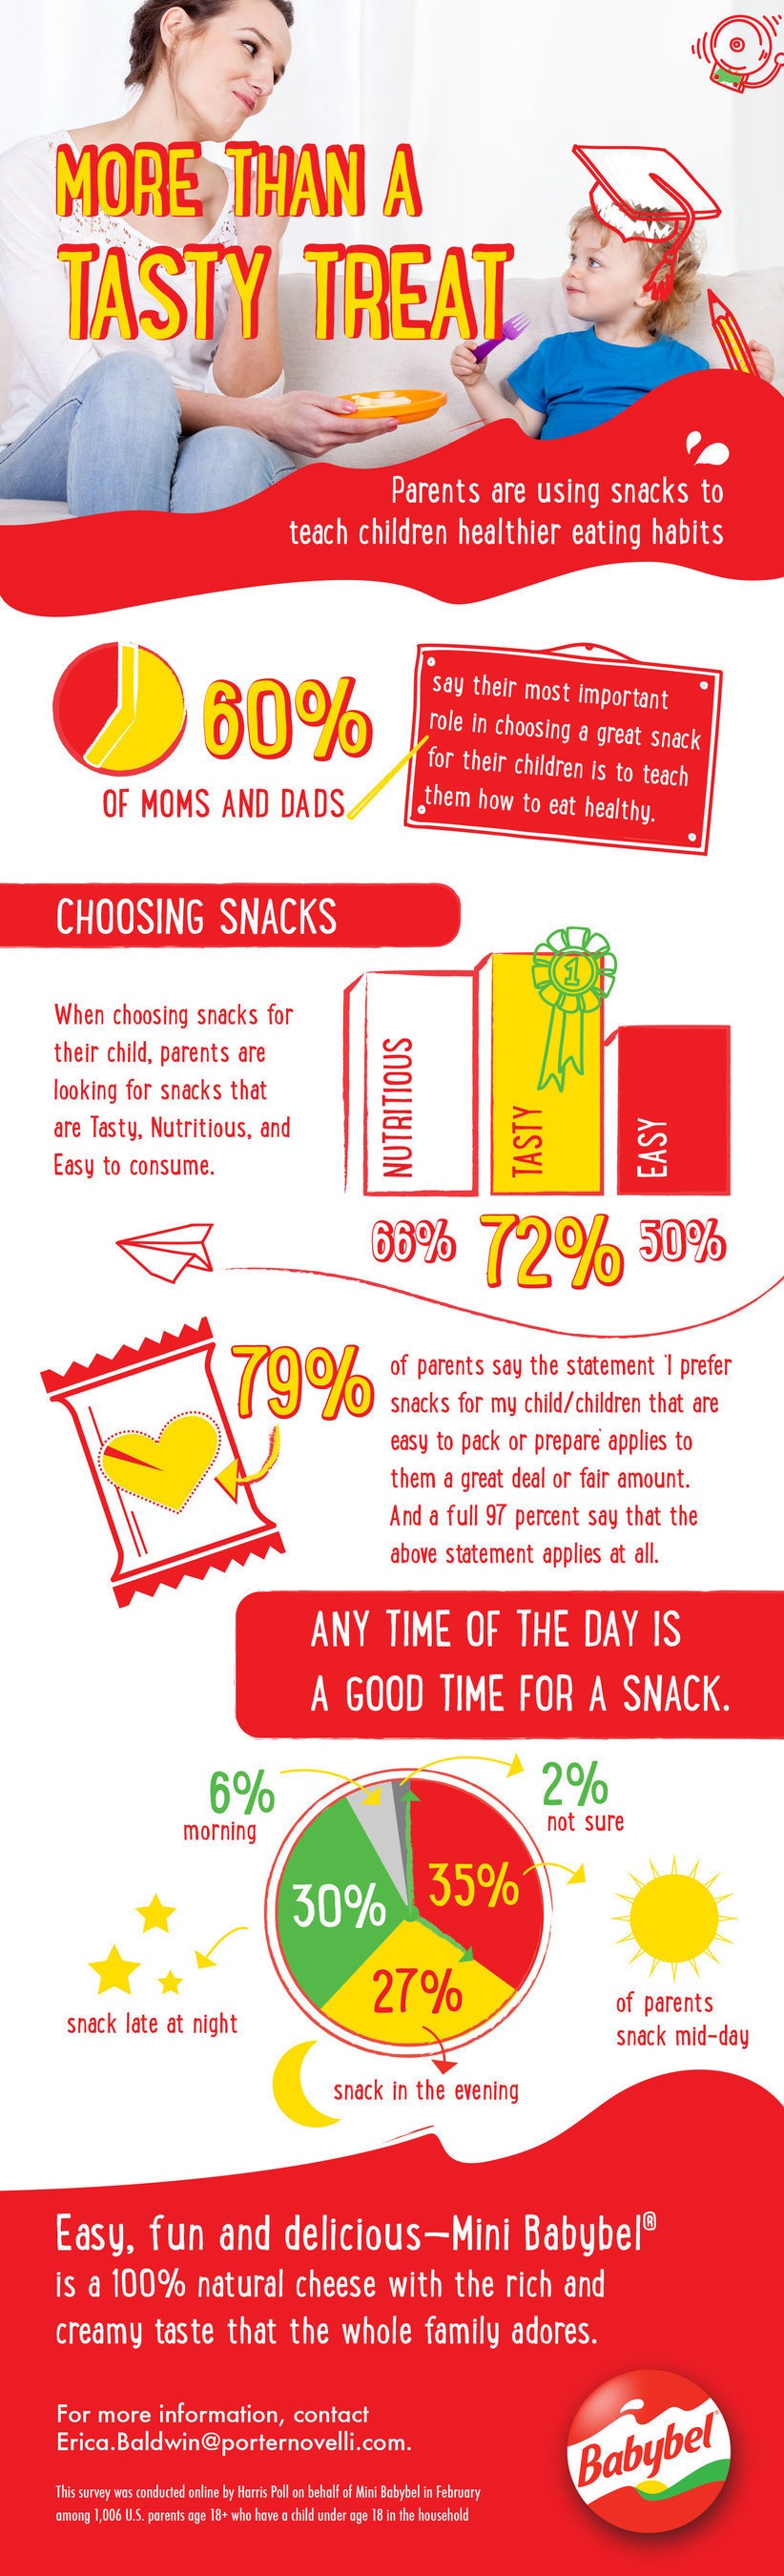 Snacking is no longer limited to a midday activity. A recent survey conducted online by